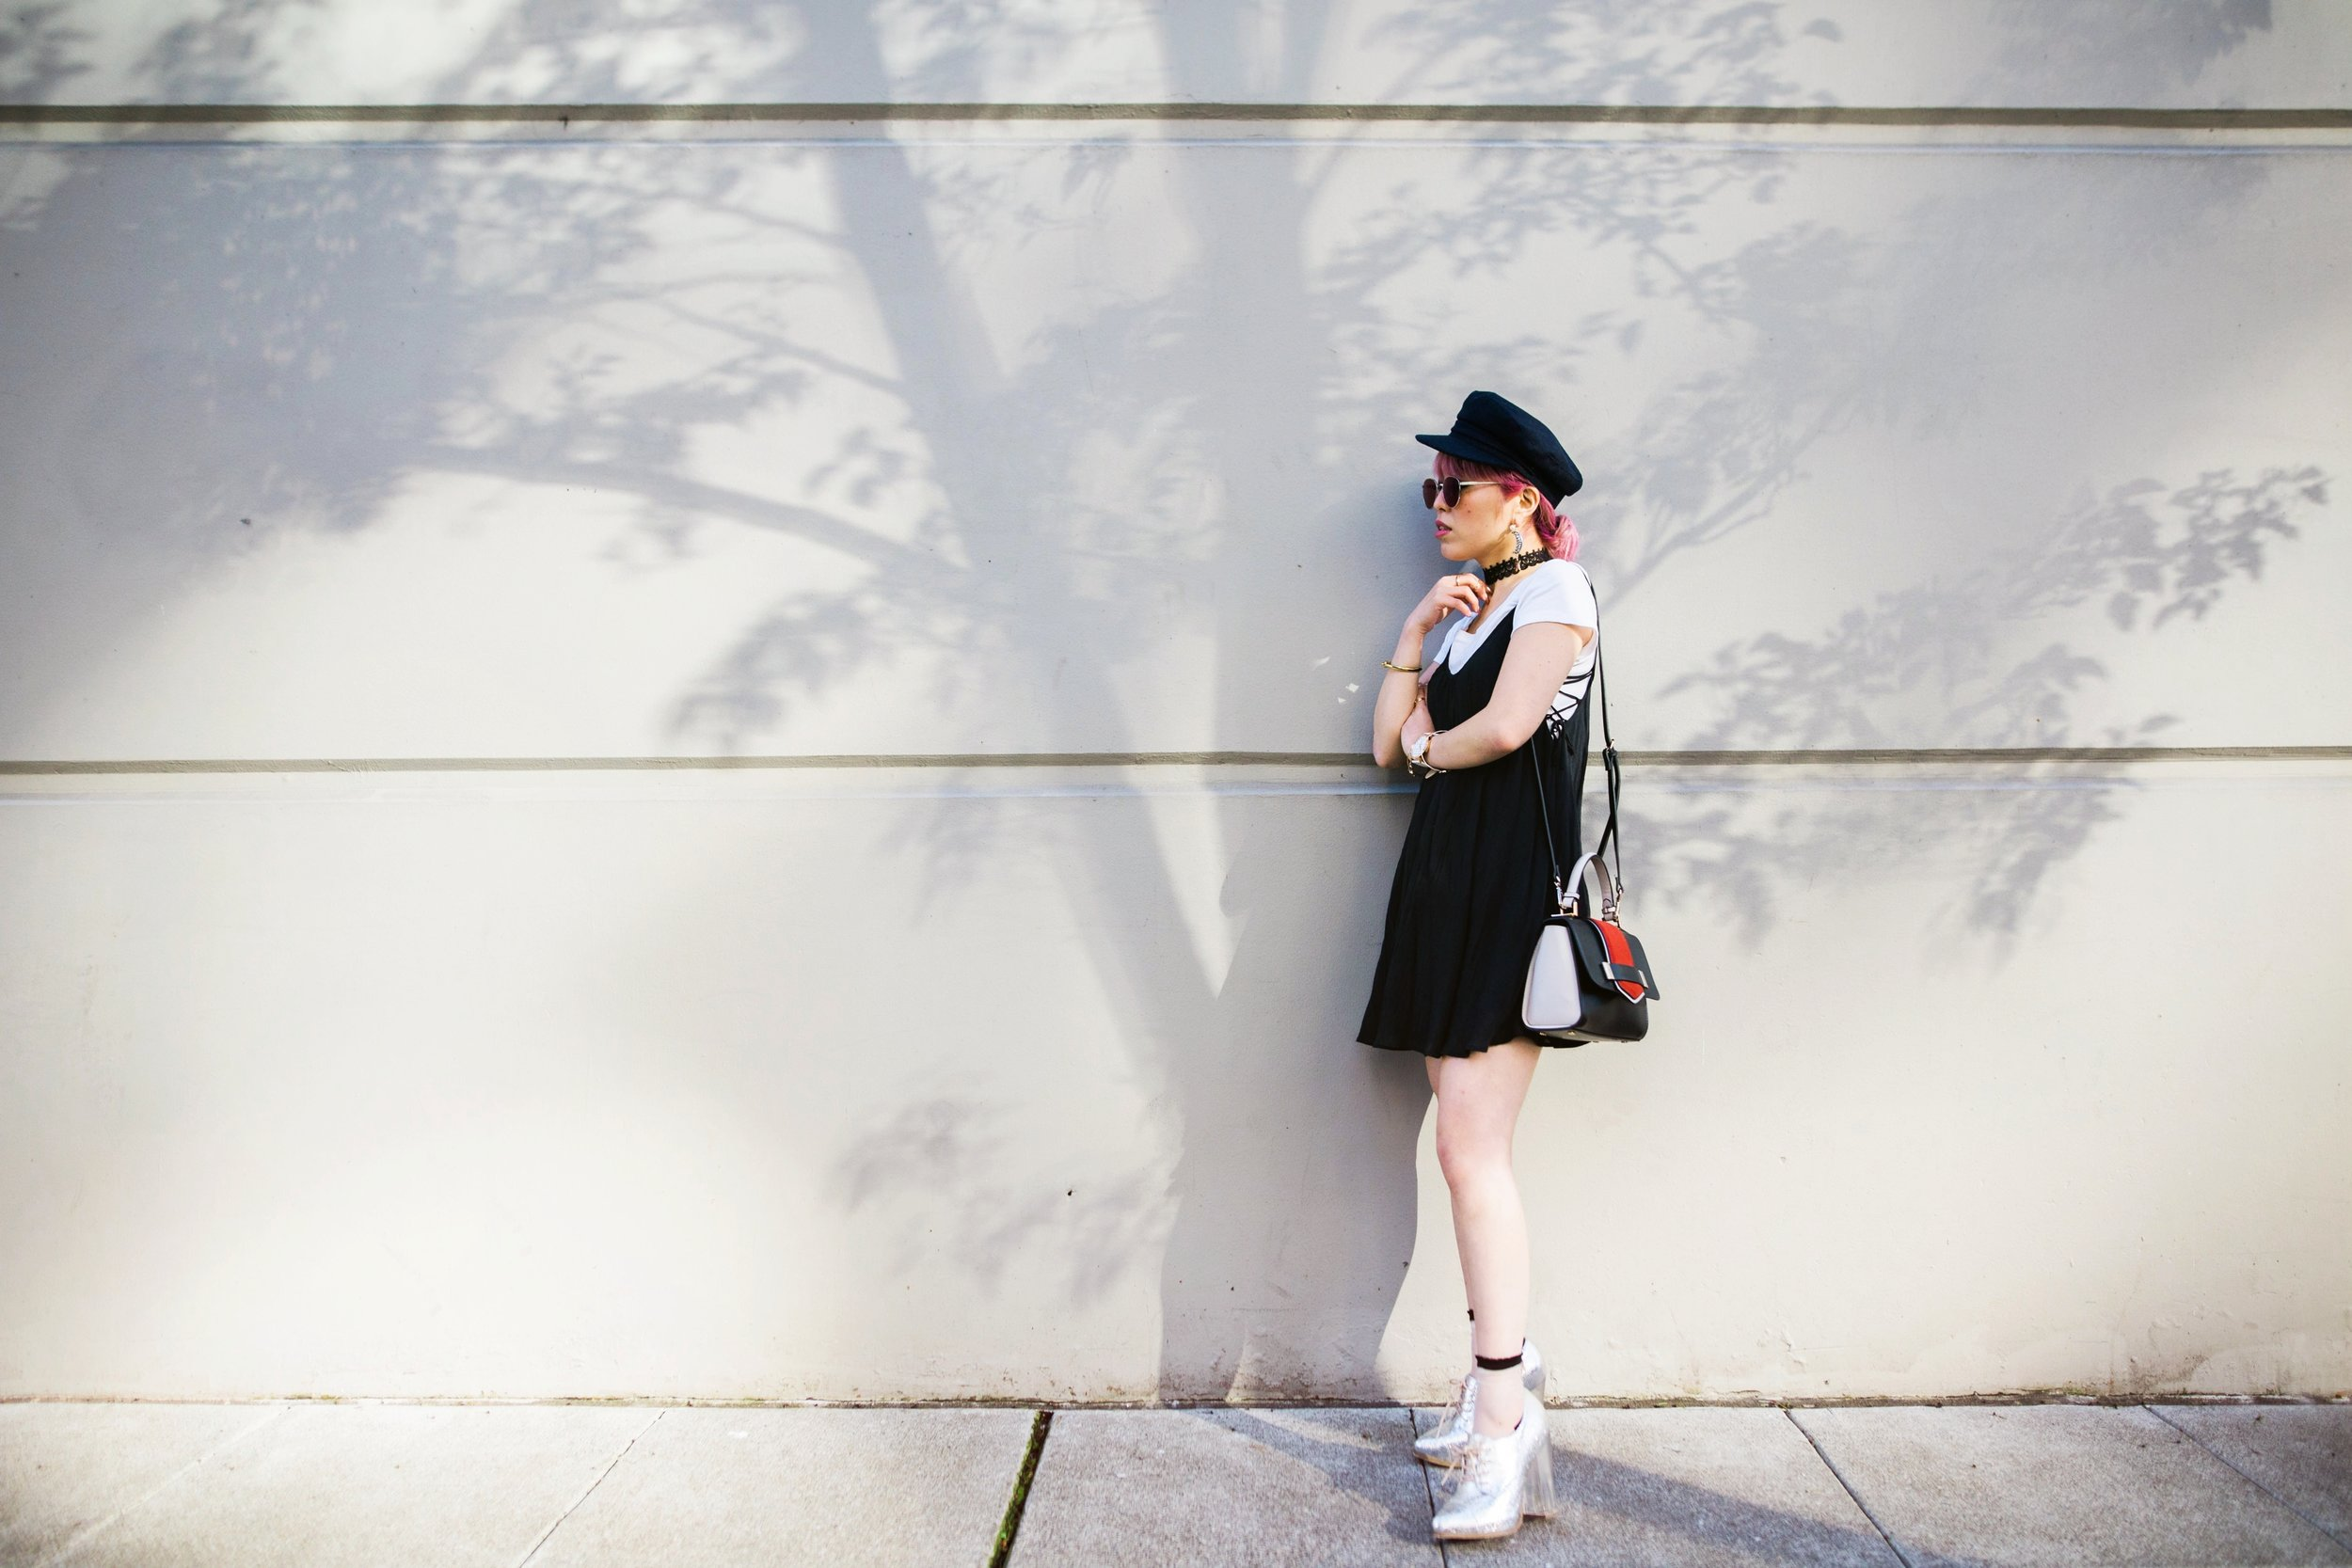 Aritzia News Boy Cap_Polette Retro Round Sunglasses_Mango Moon Star Earrings_Shopdixi Lace Choker_Forever 21 White Tee_Urban Outfitters Little Black Dress_Zara Bag_Sheer ankle Socks_ASOS Glitter Block heels Shoes_Aikas Love Closet_Seattle Fashion Blogger_Japanese_Pink hair 19